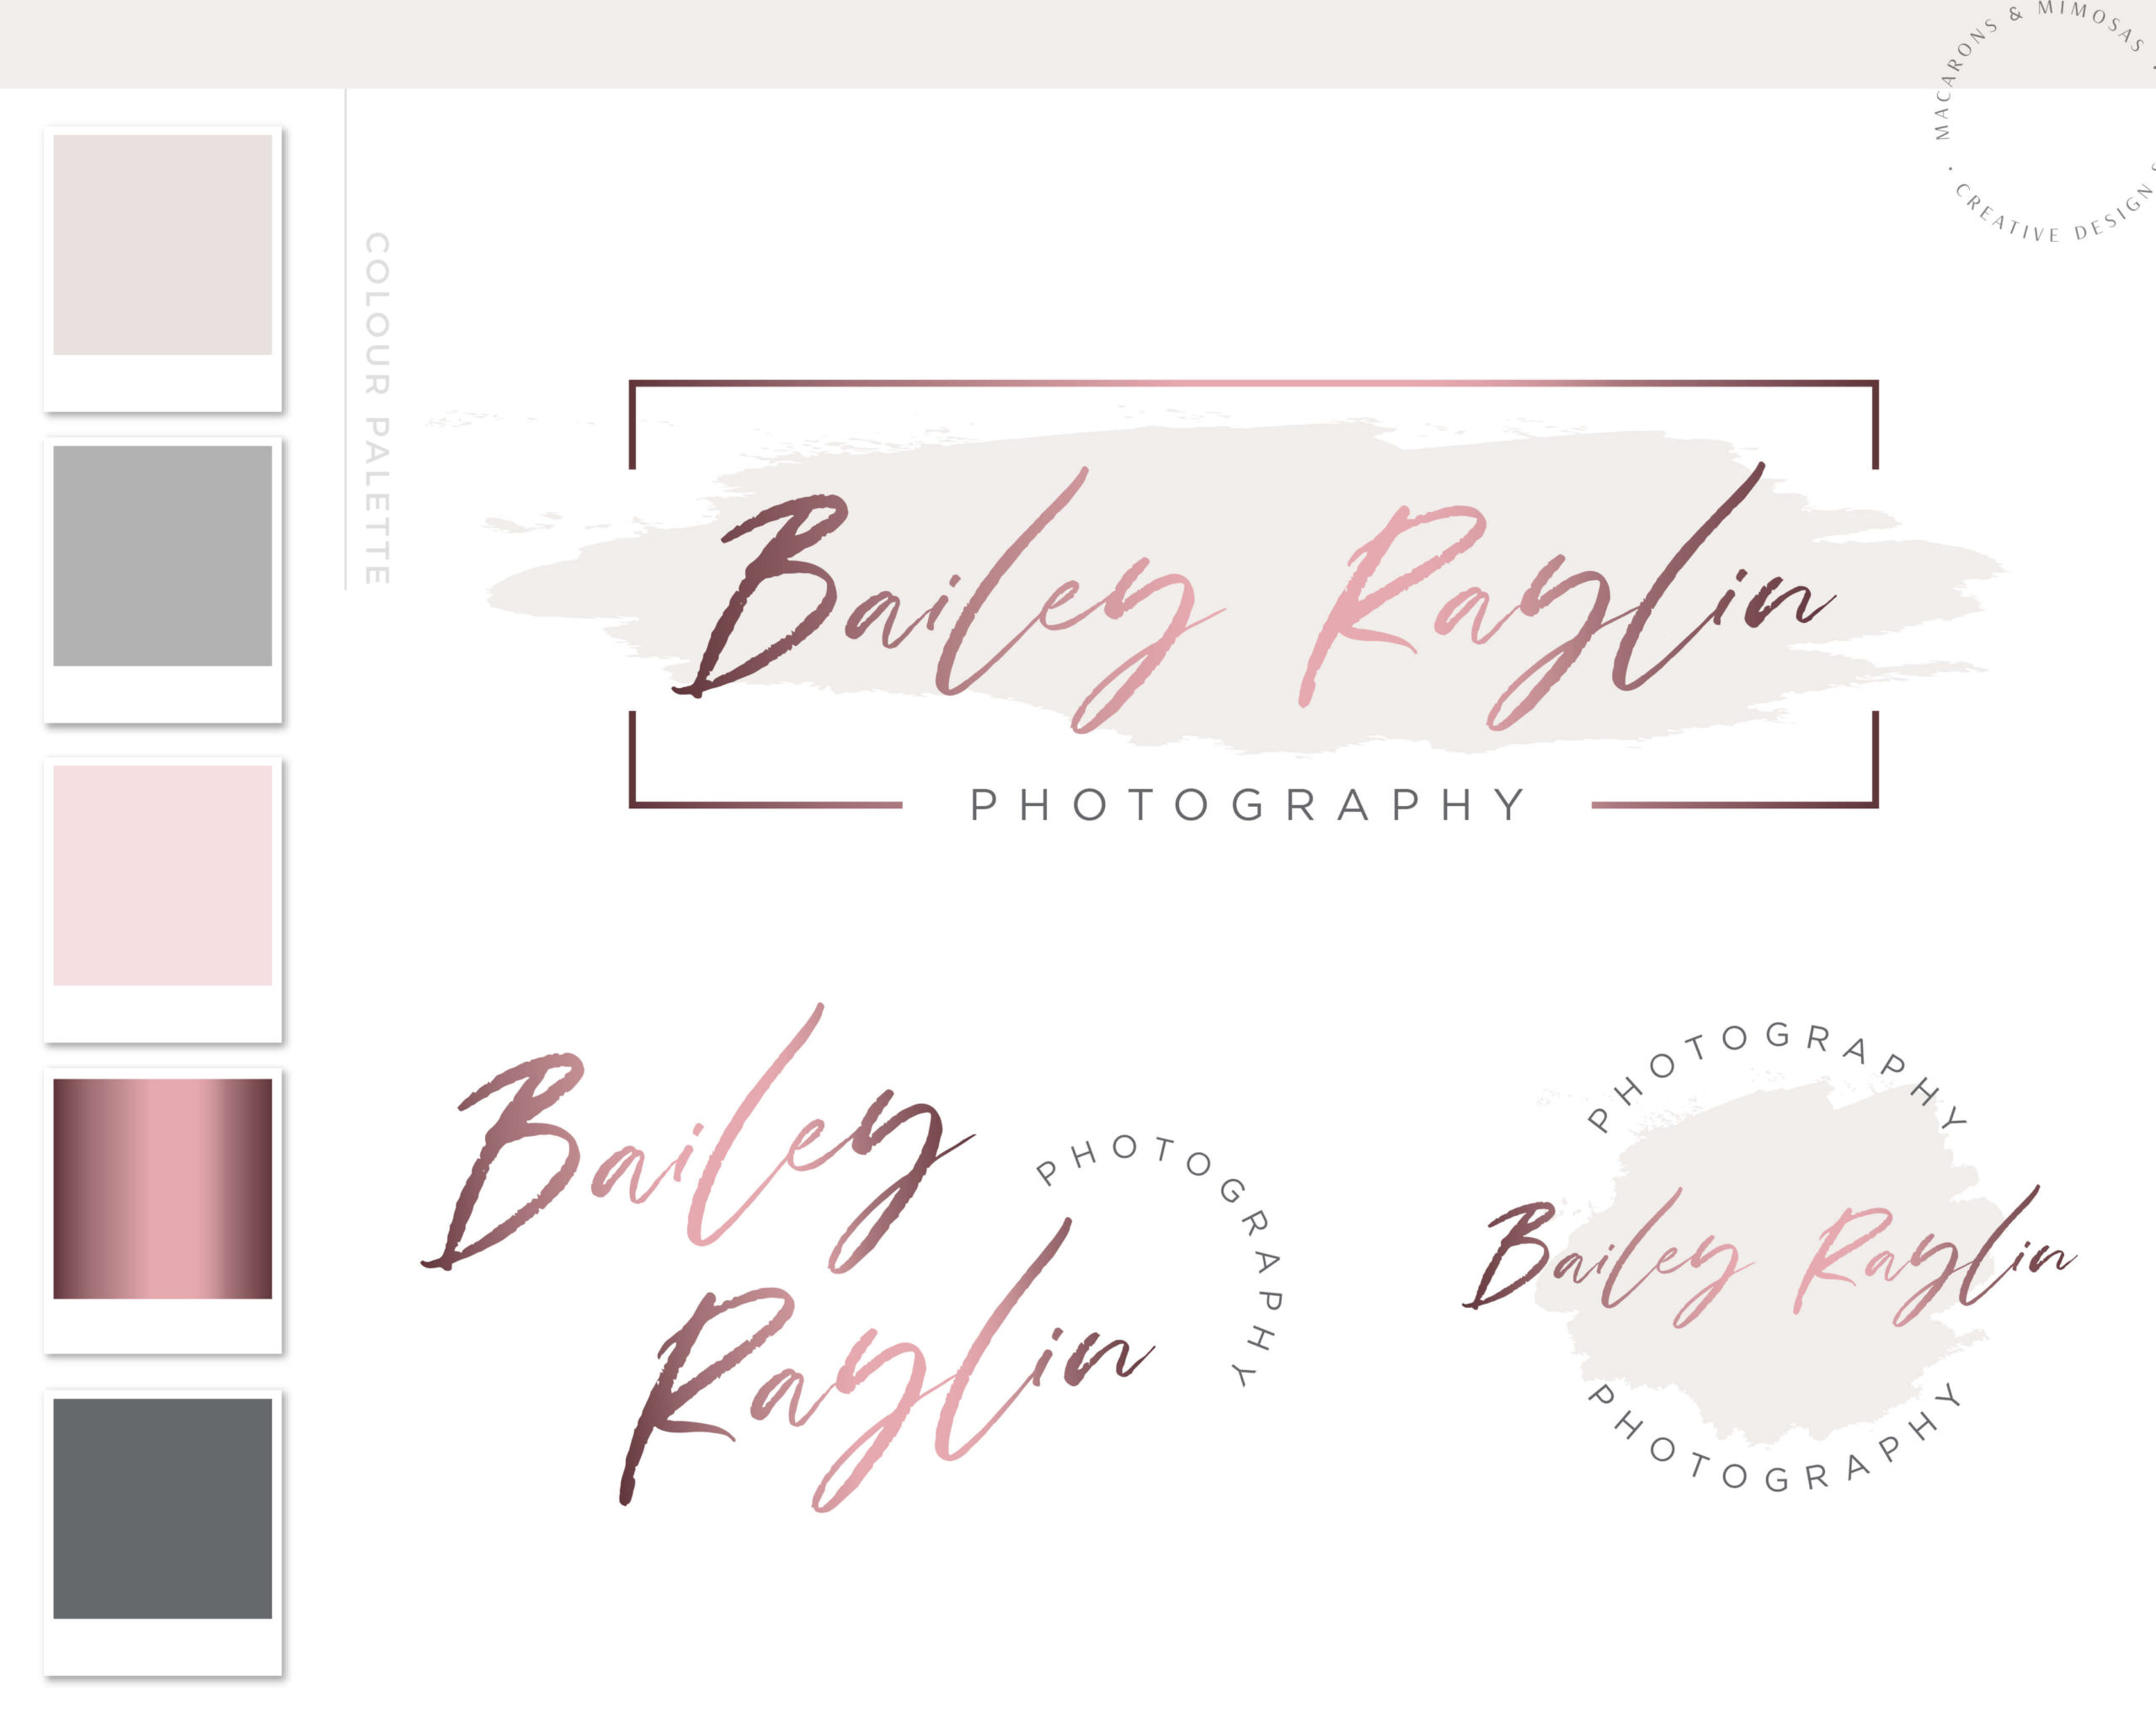 Logos & Branding Kit Photography Logo design Package Rose gold, Photo Watermark Real estate logo business brand